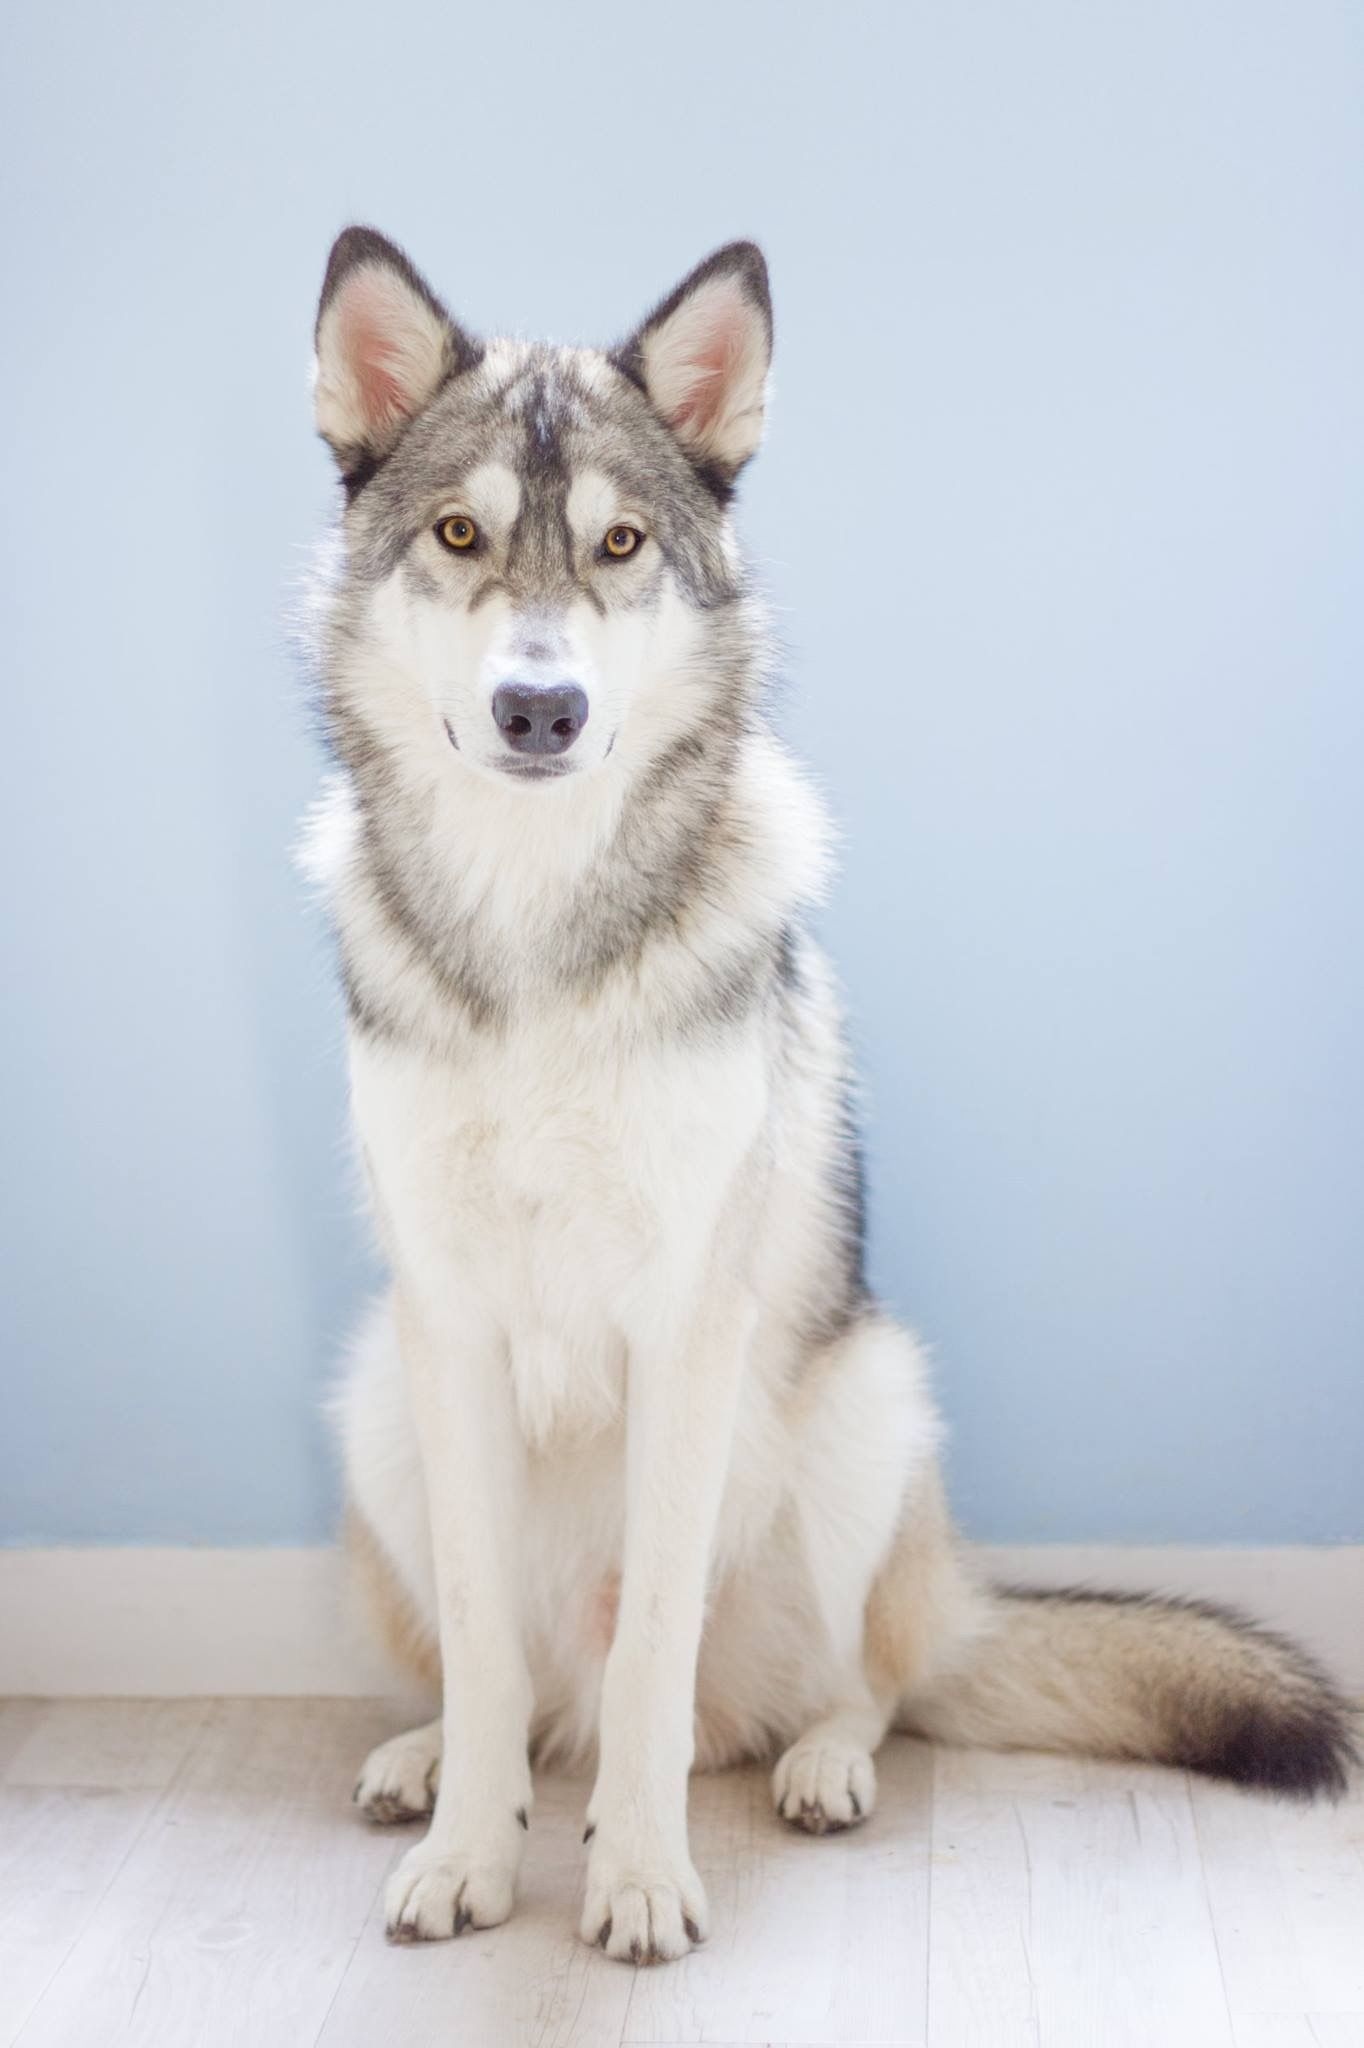 Best Photos Images And Picutures Ideas About Tamaskan Dog Dogs